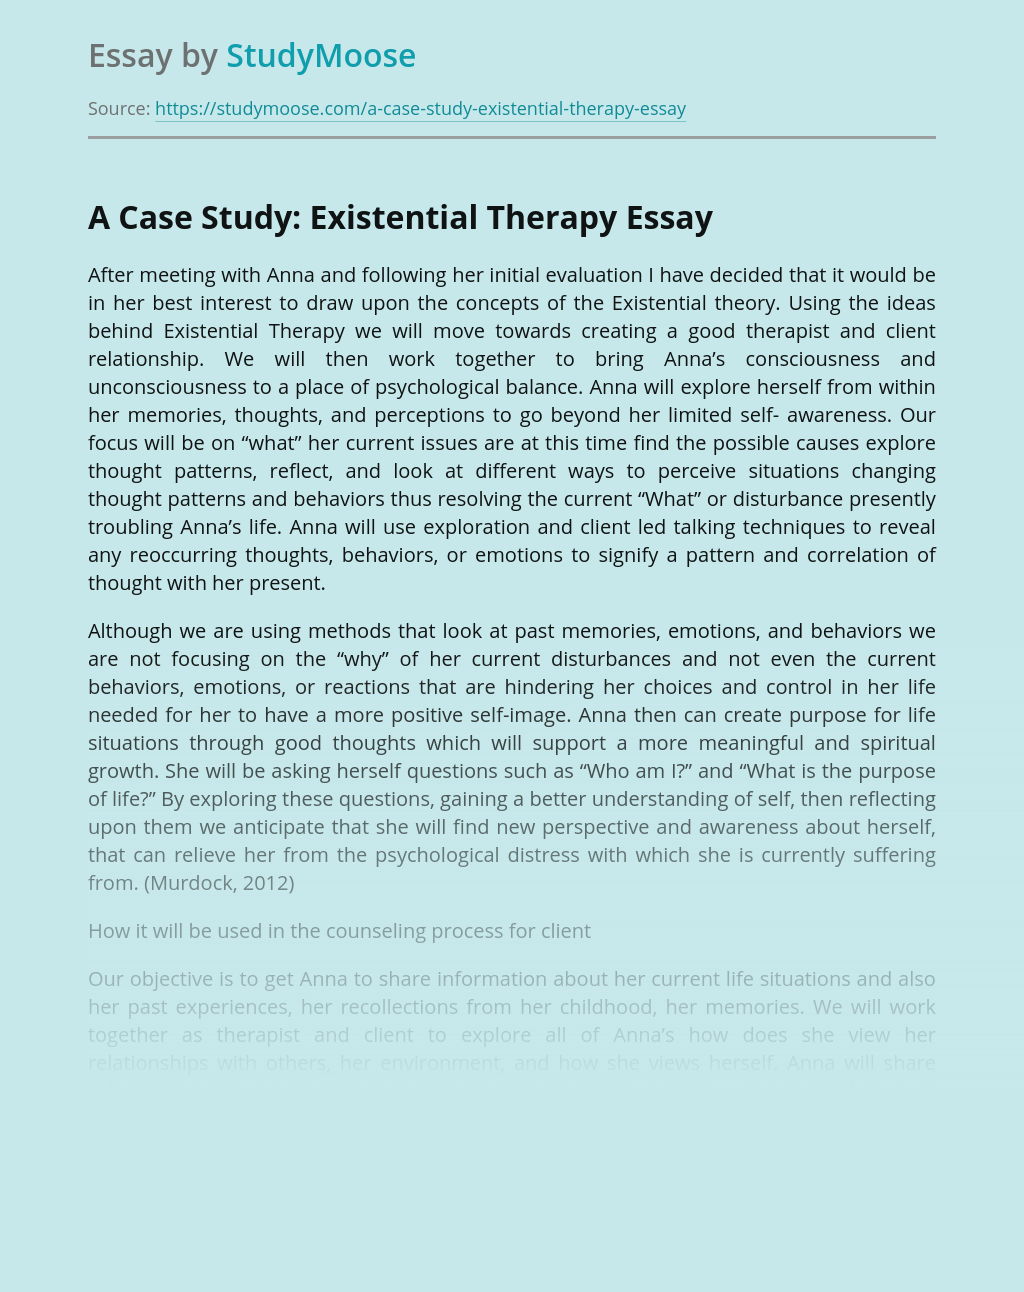 A Case Study: Existential Therapy